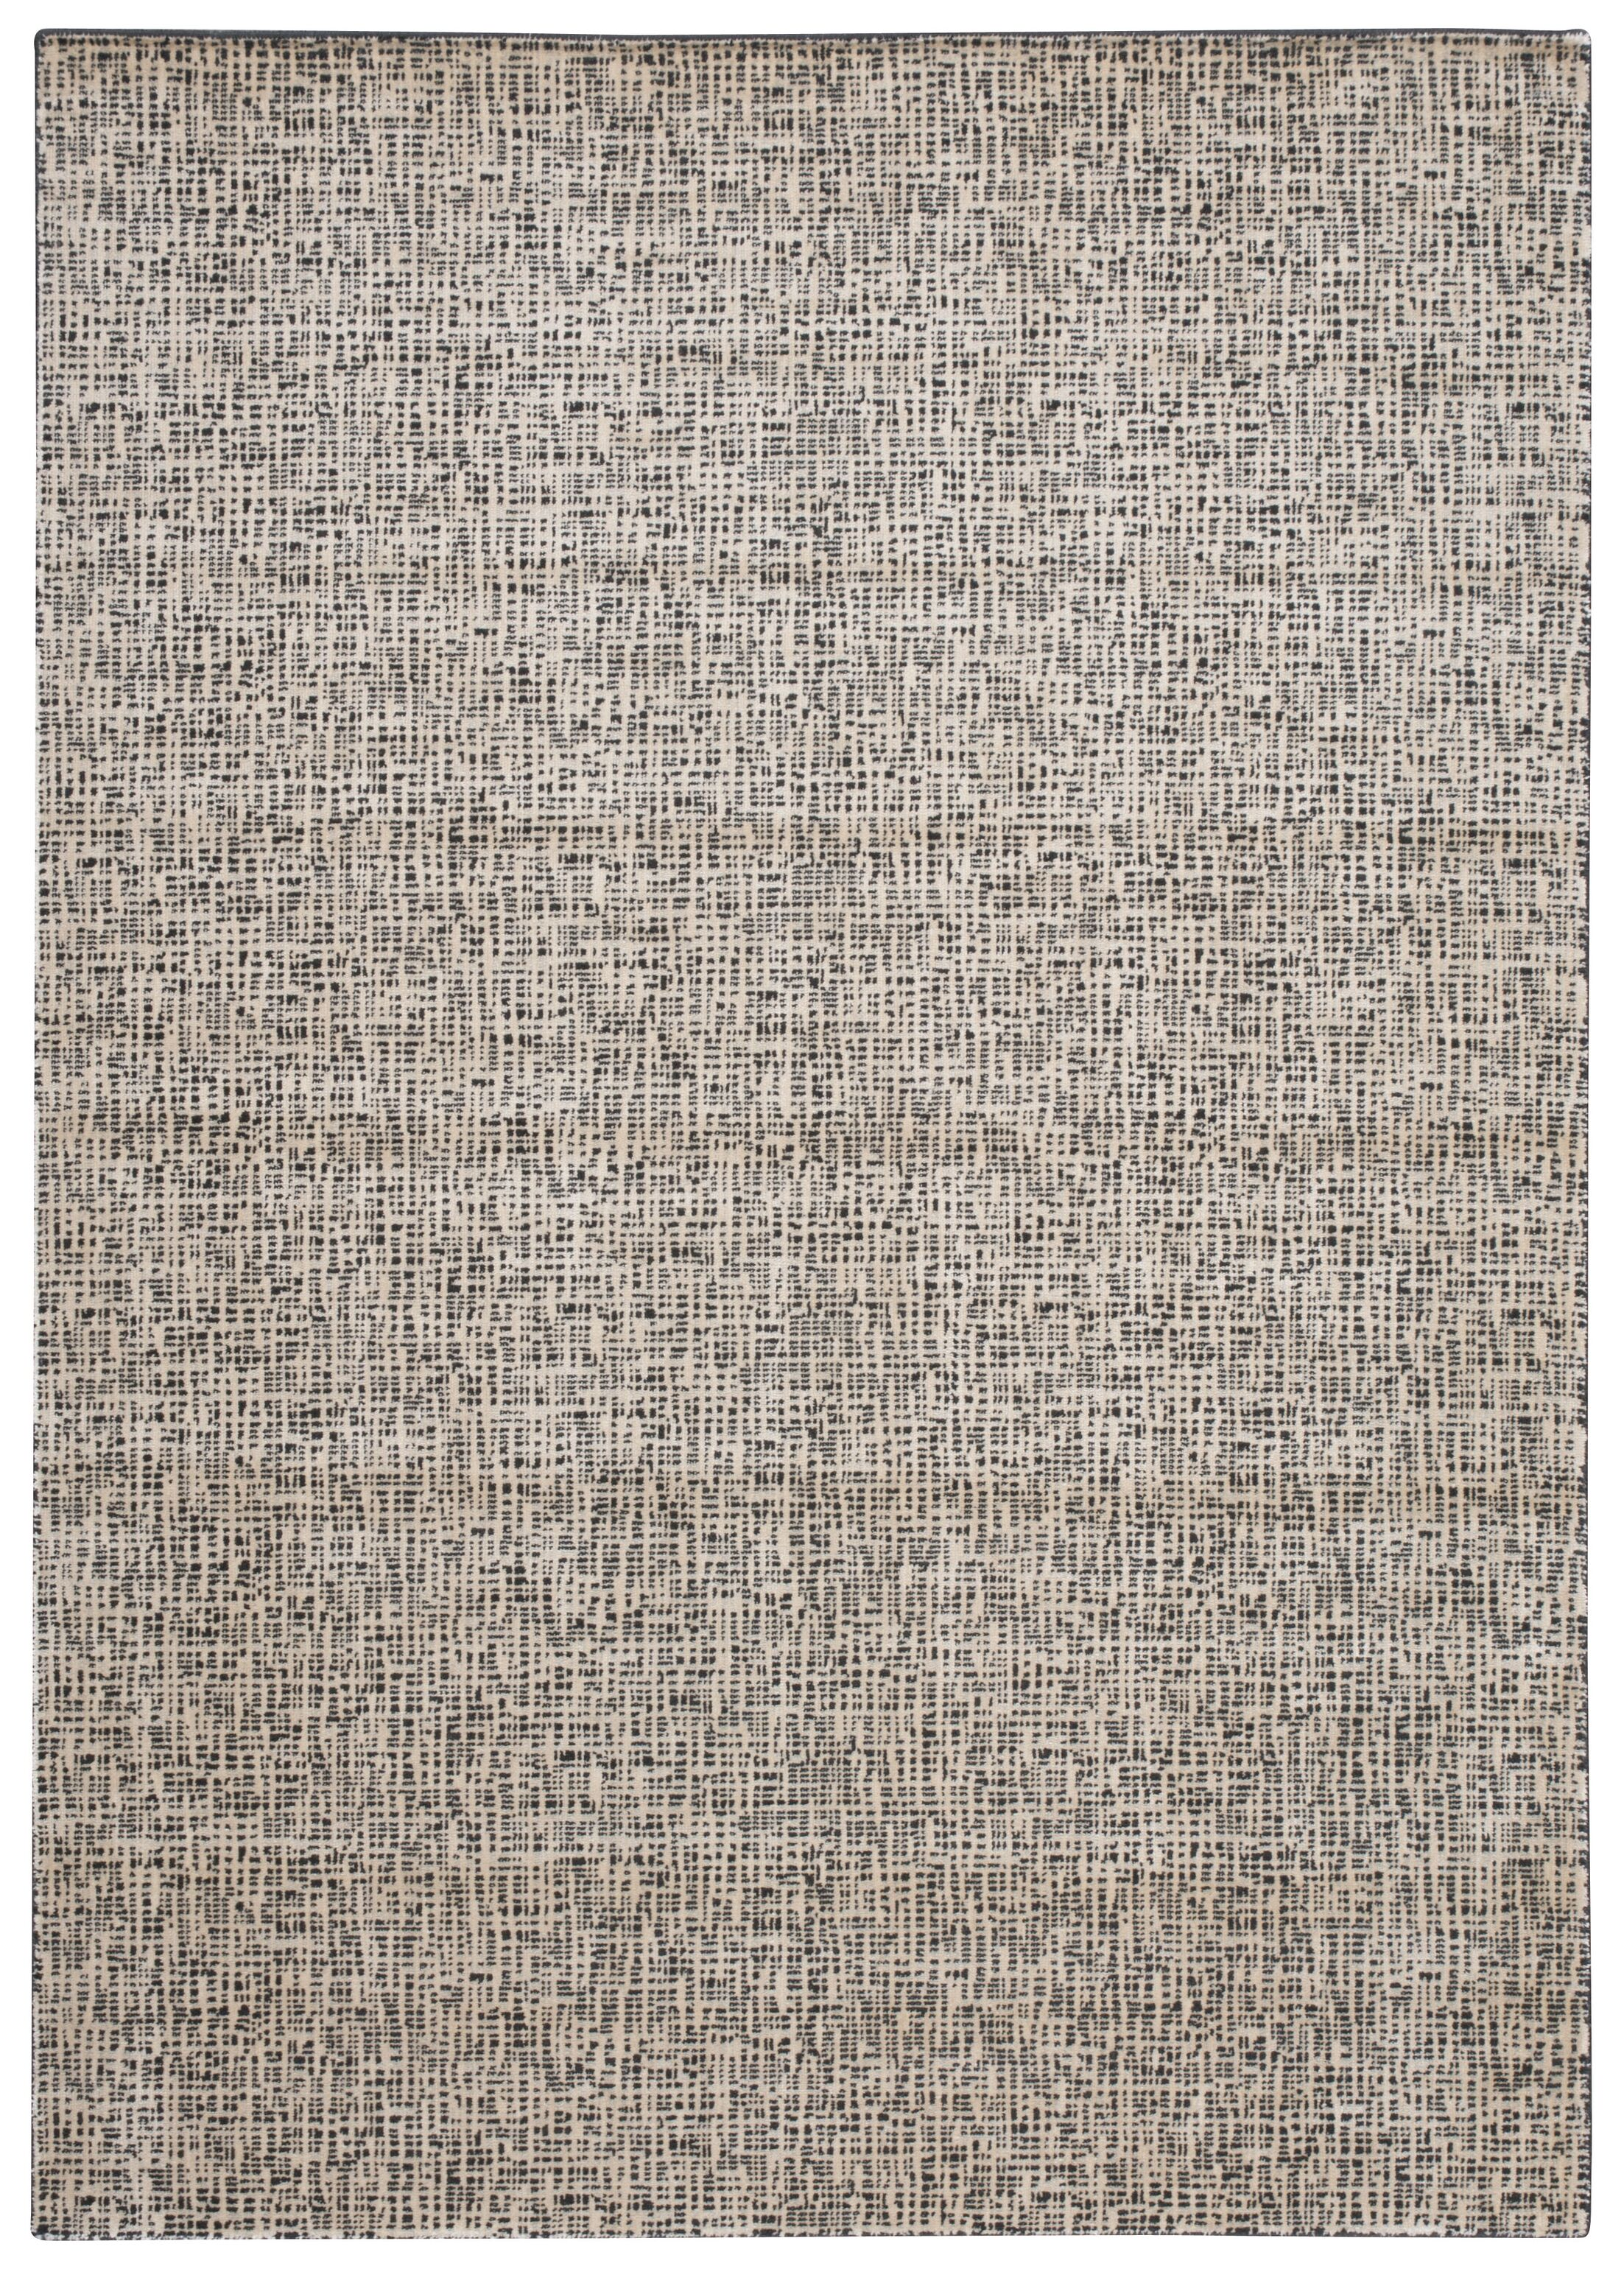 Sinclair Brown Area Rug Rug Size: Rectangle 7'6